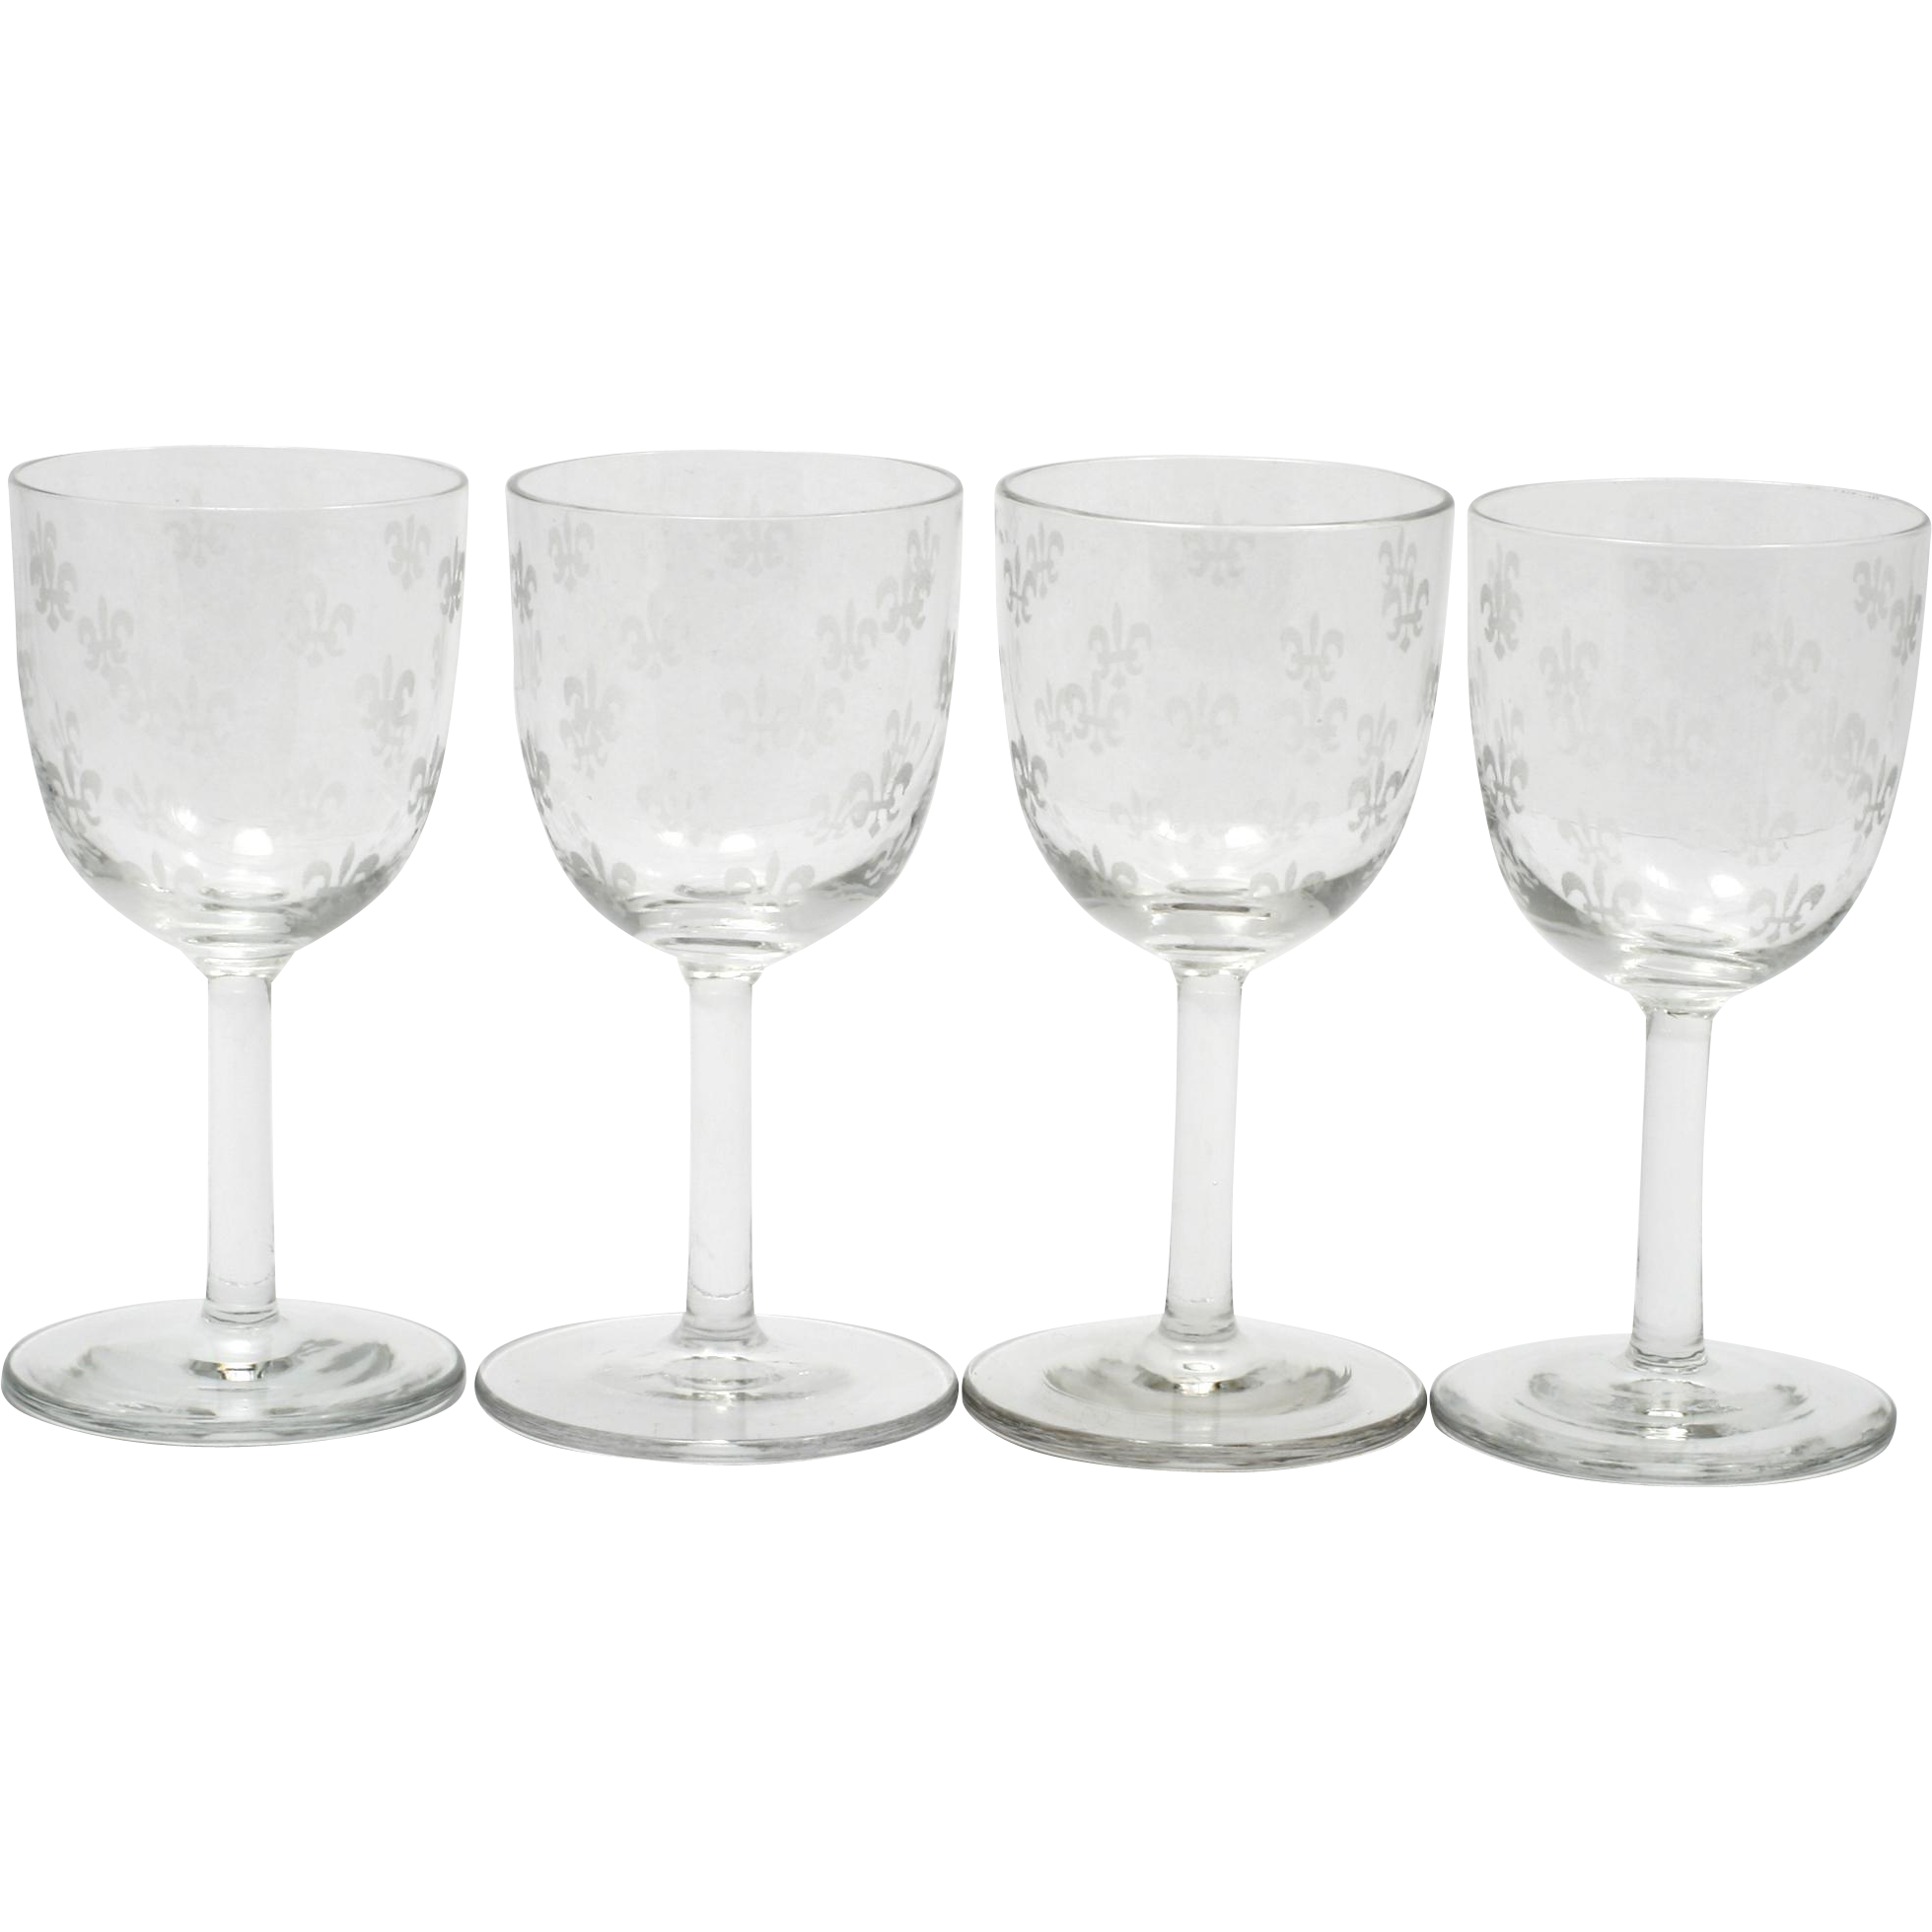 Fleur De Lis Etched Wine Glasses Set of 4 Vintage Elegant Glass 1930s Bryce